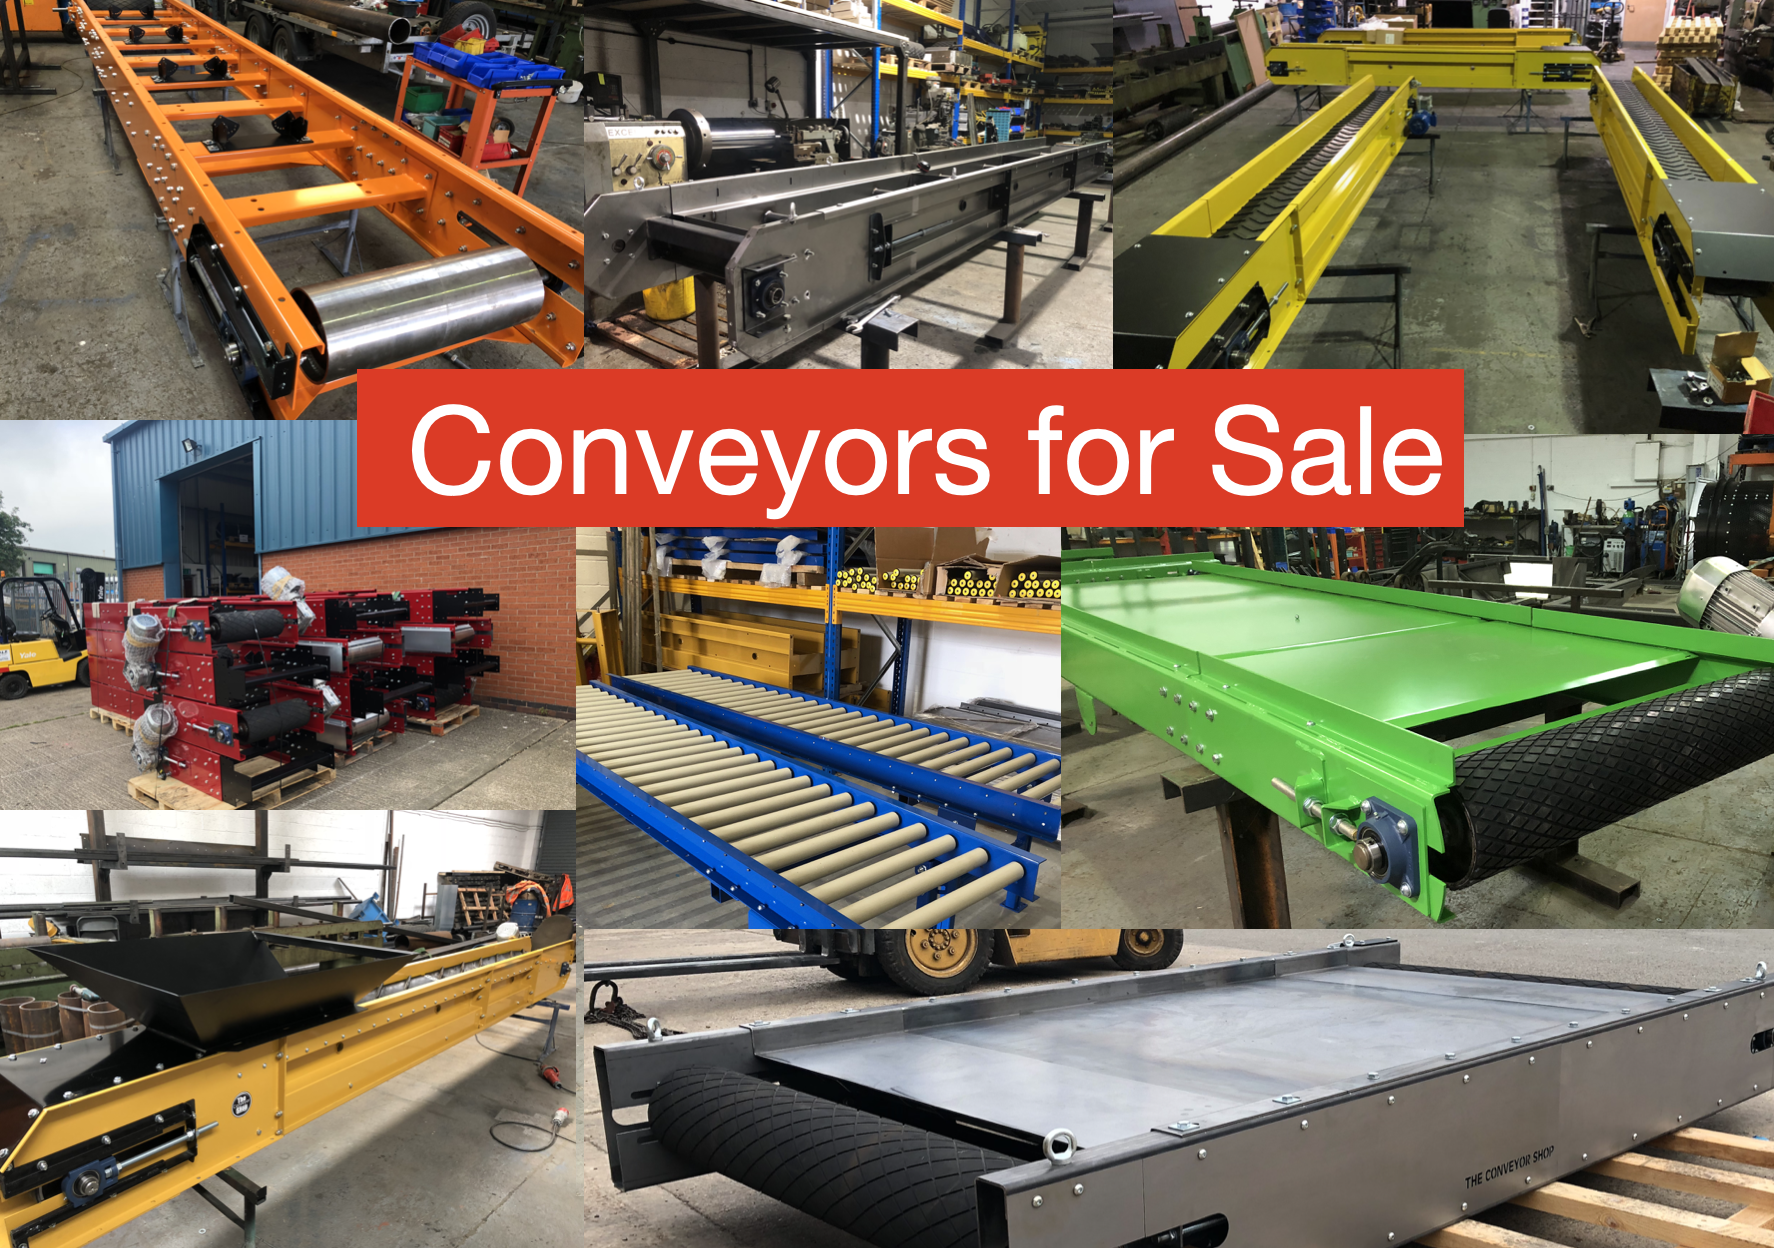 conveyors_for_sale__the_conveyor_shop_